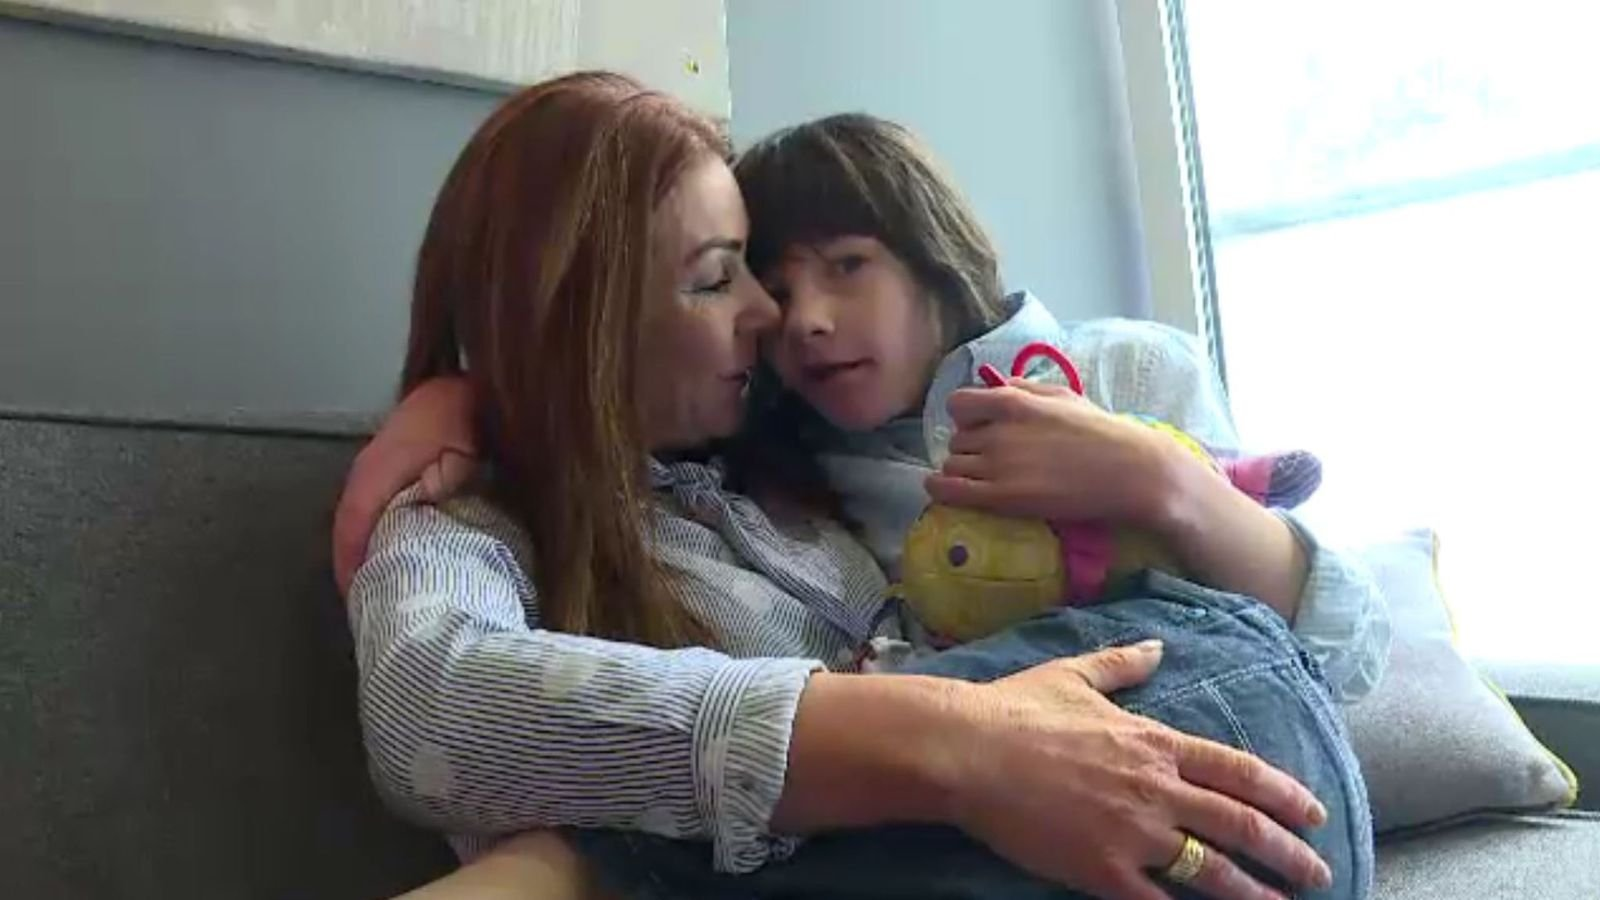 Epileptic boy Billy Caldwell has 'life-threatening seizures' after cannabis confiscated